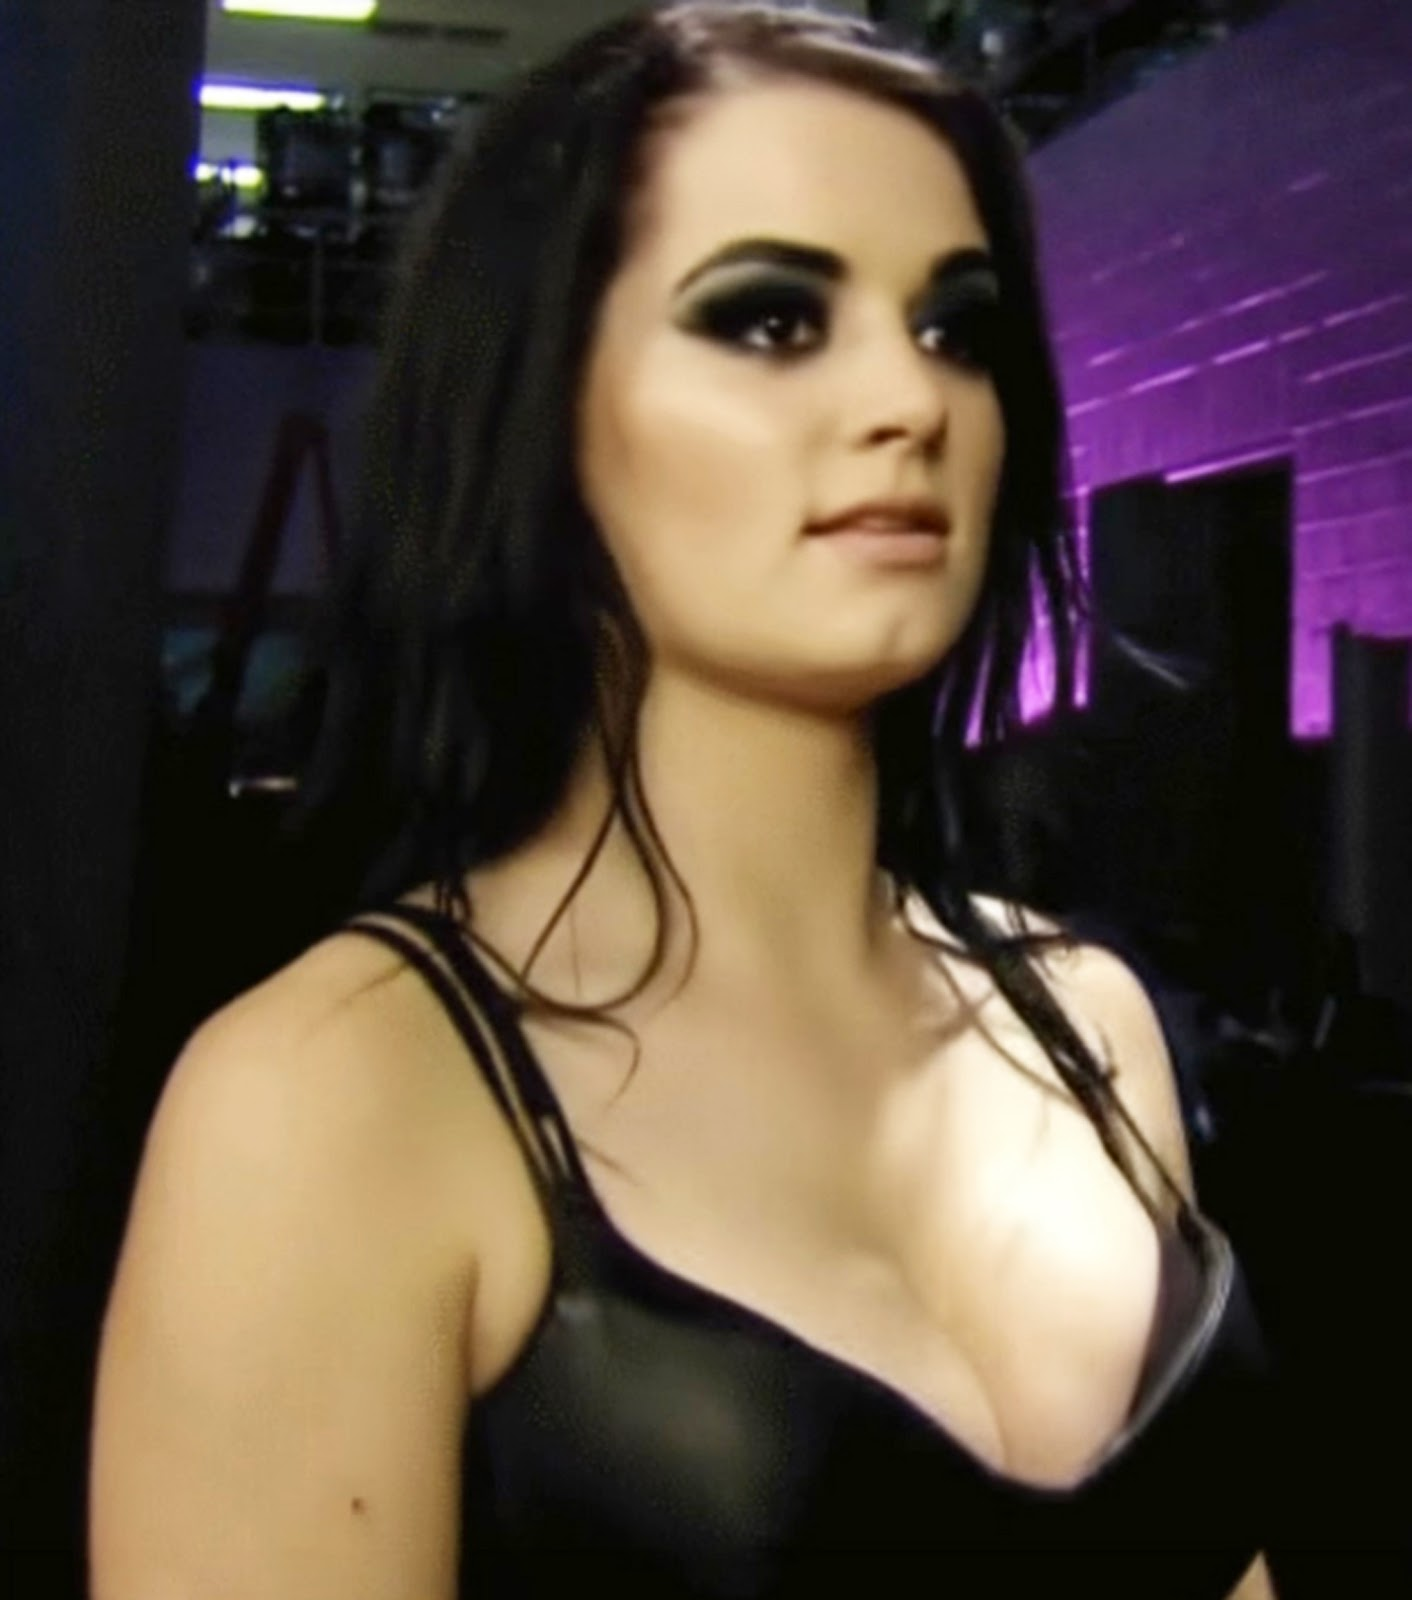 Paige wallpaper image photos pics hd ultra hd wallpapers wwe paige tattoo images photos body wallpapers free download voltagebd Images